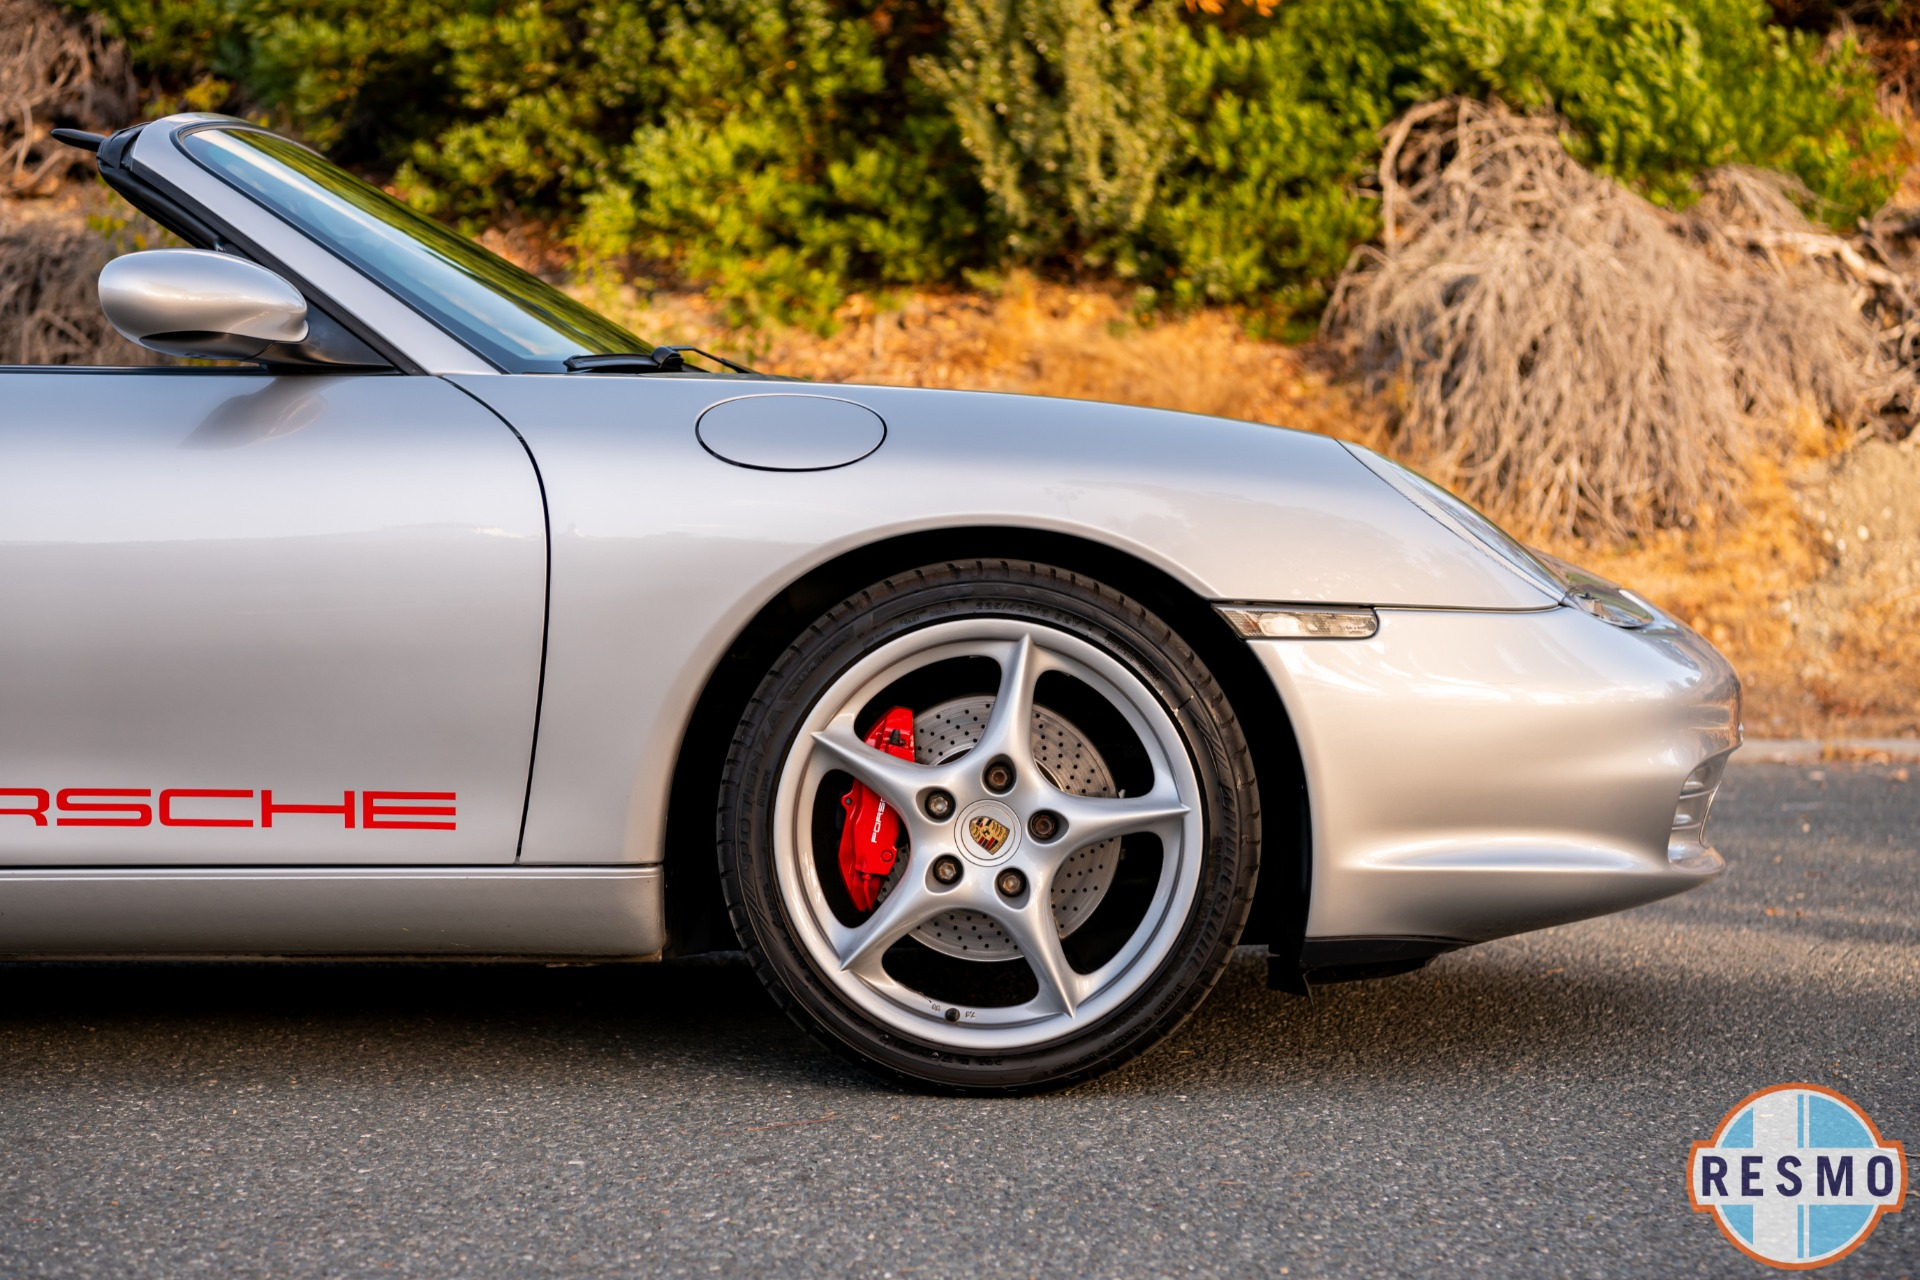 Used 2003 Porsche Boxster S Used 2003 Porsche Boxster S for sale Sold at Response Motors in Mountain View CA 3